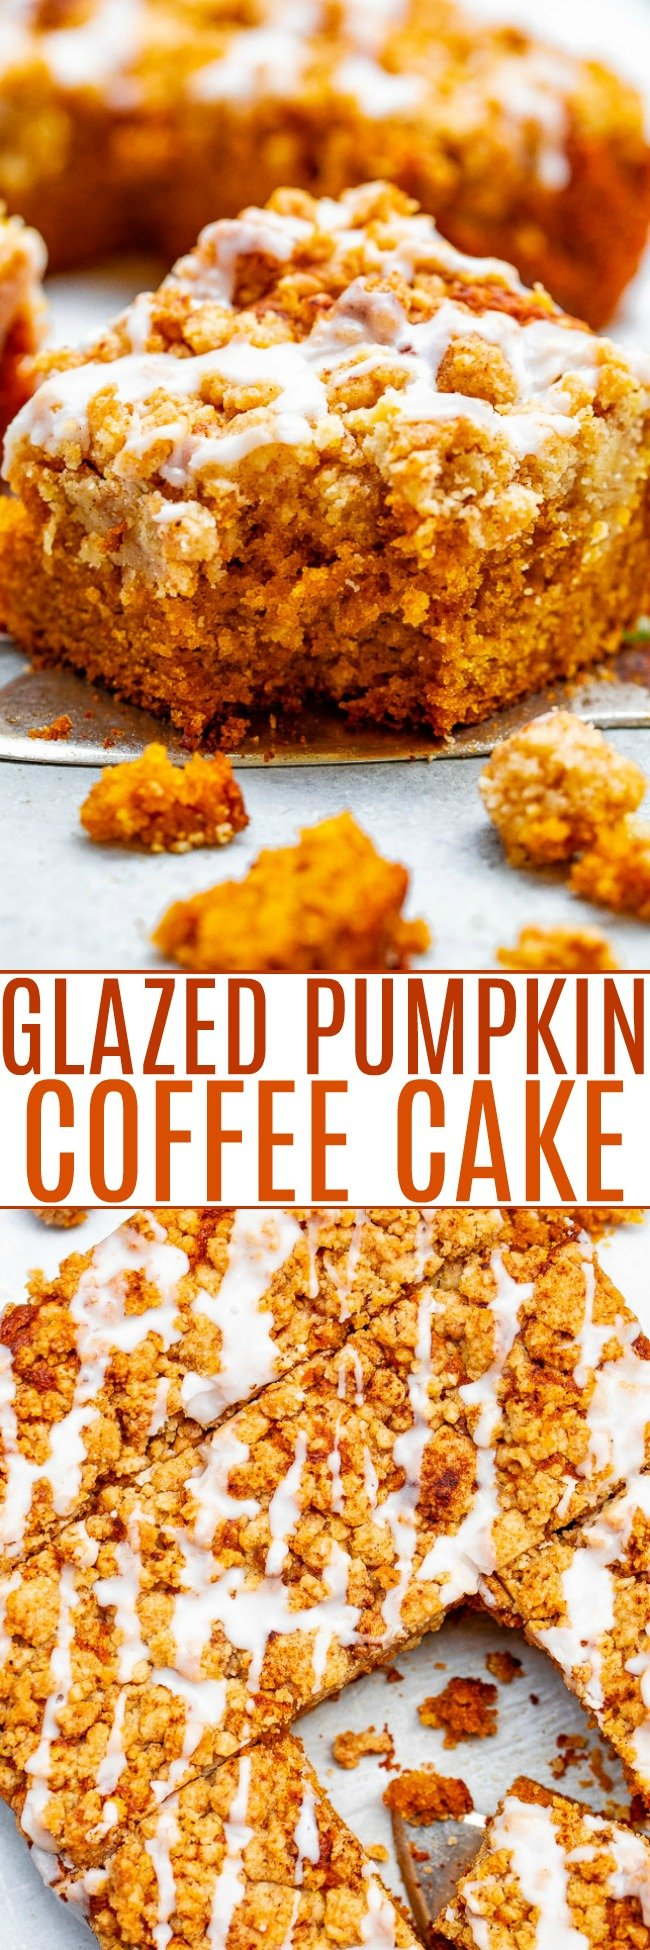 Glazed Pumpkin Coffee Cake - A FAST and EASY no-mixer pumpkin coffee cake with rich pumpkin flavor and topped with big oatmeal crumbles!! So soft, moist, tender! You're going to LOVE this cake for breakfast, brunch, or entertaining!!